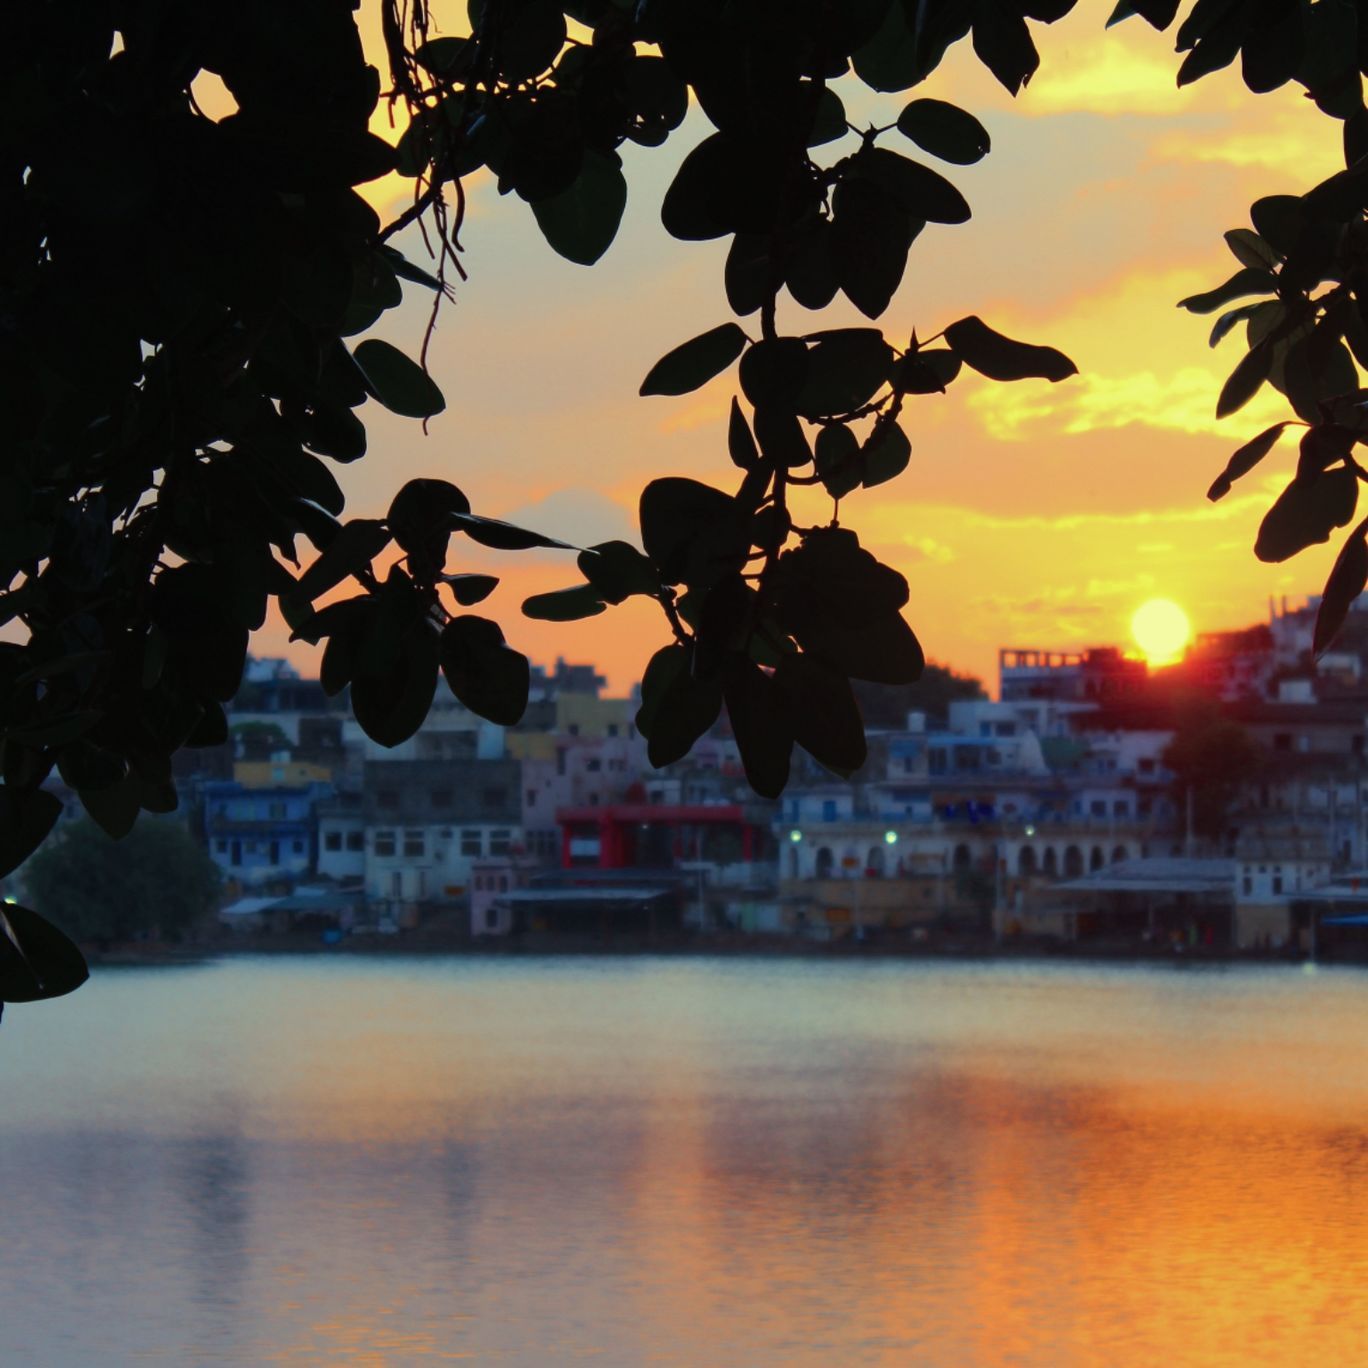 Photo of Pushkar By Abhinav Sangwan